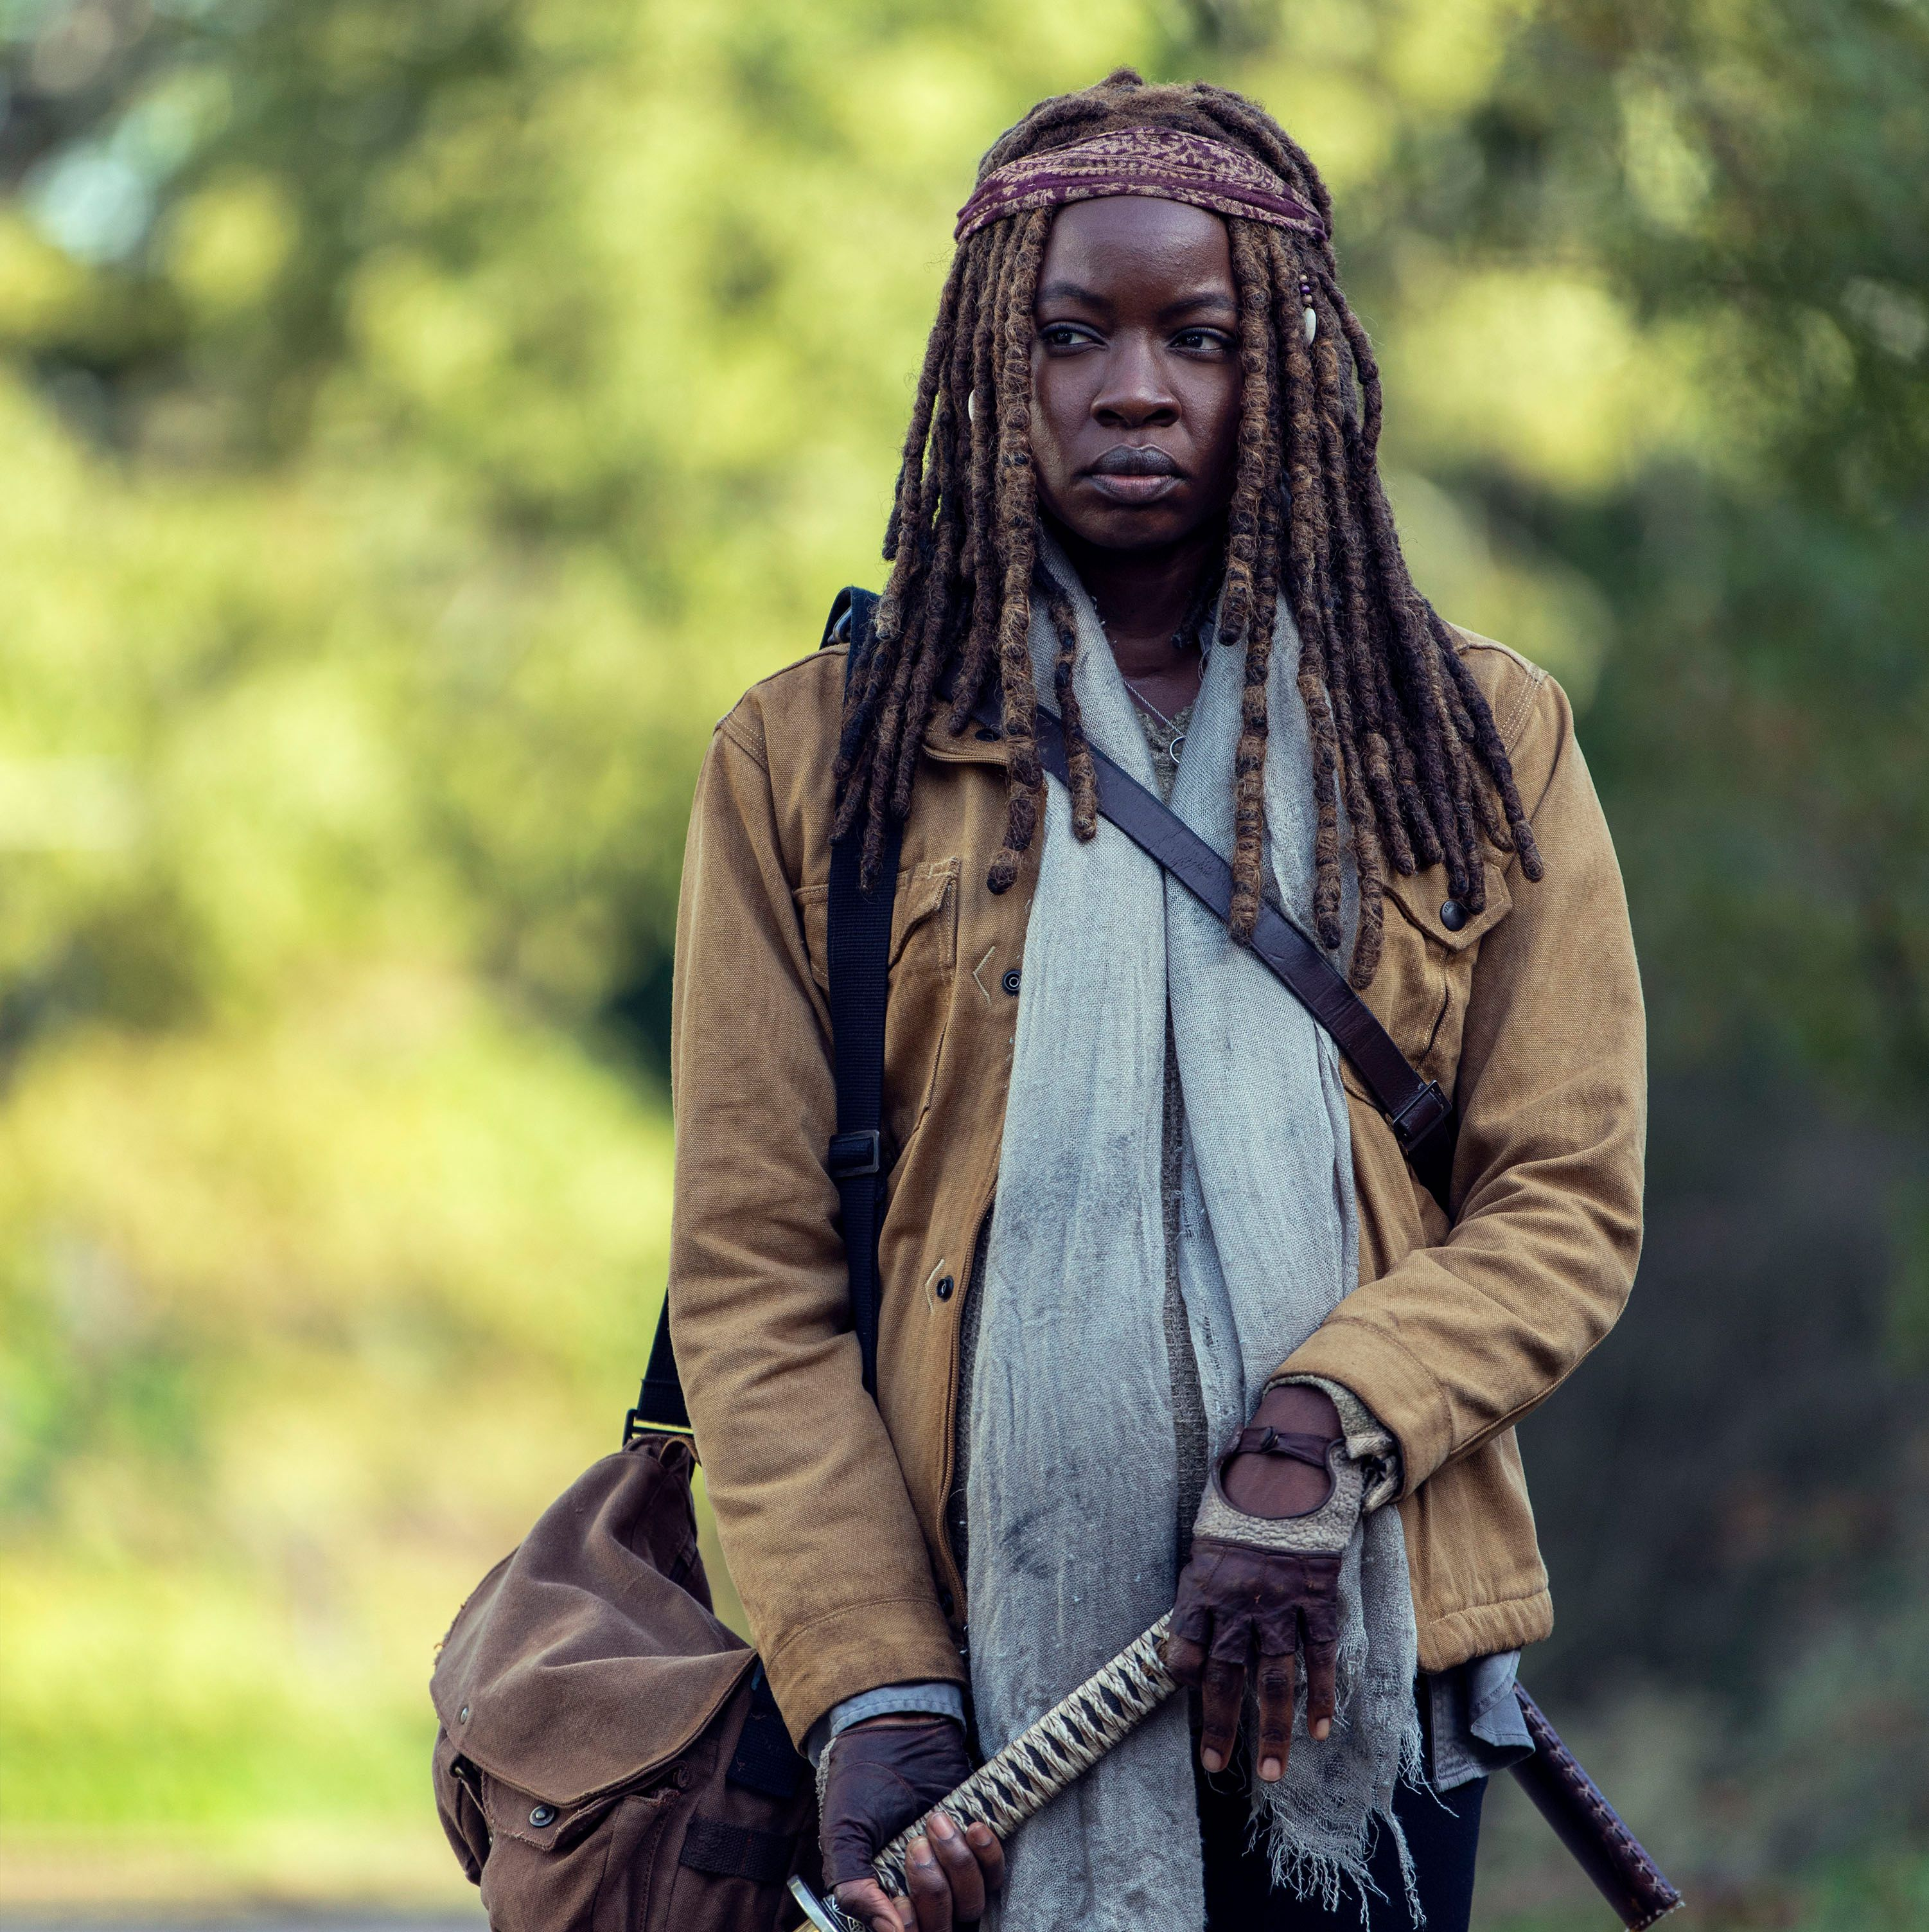 The Walking Dead just revealed the horrific backstory behind Michonne and Daryl's scars